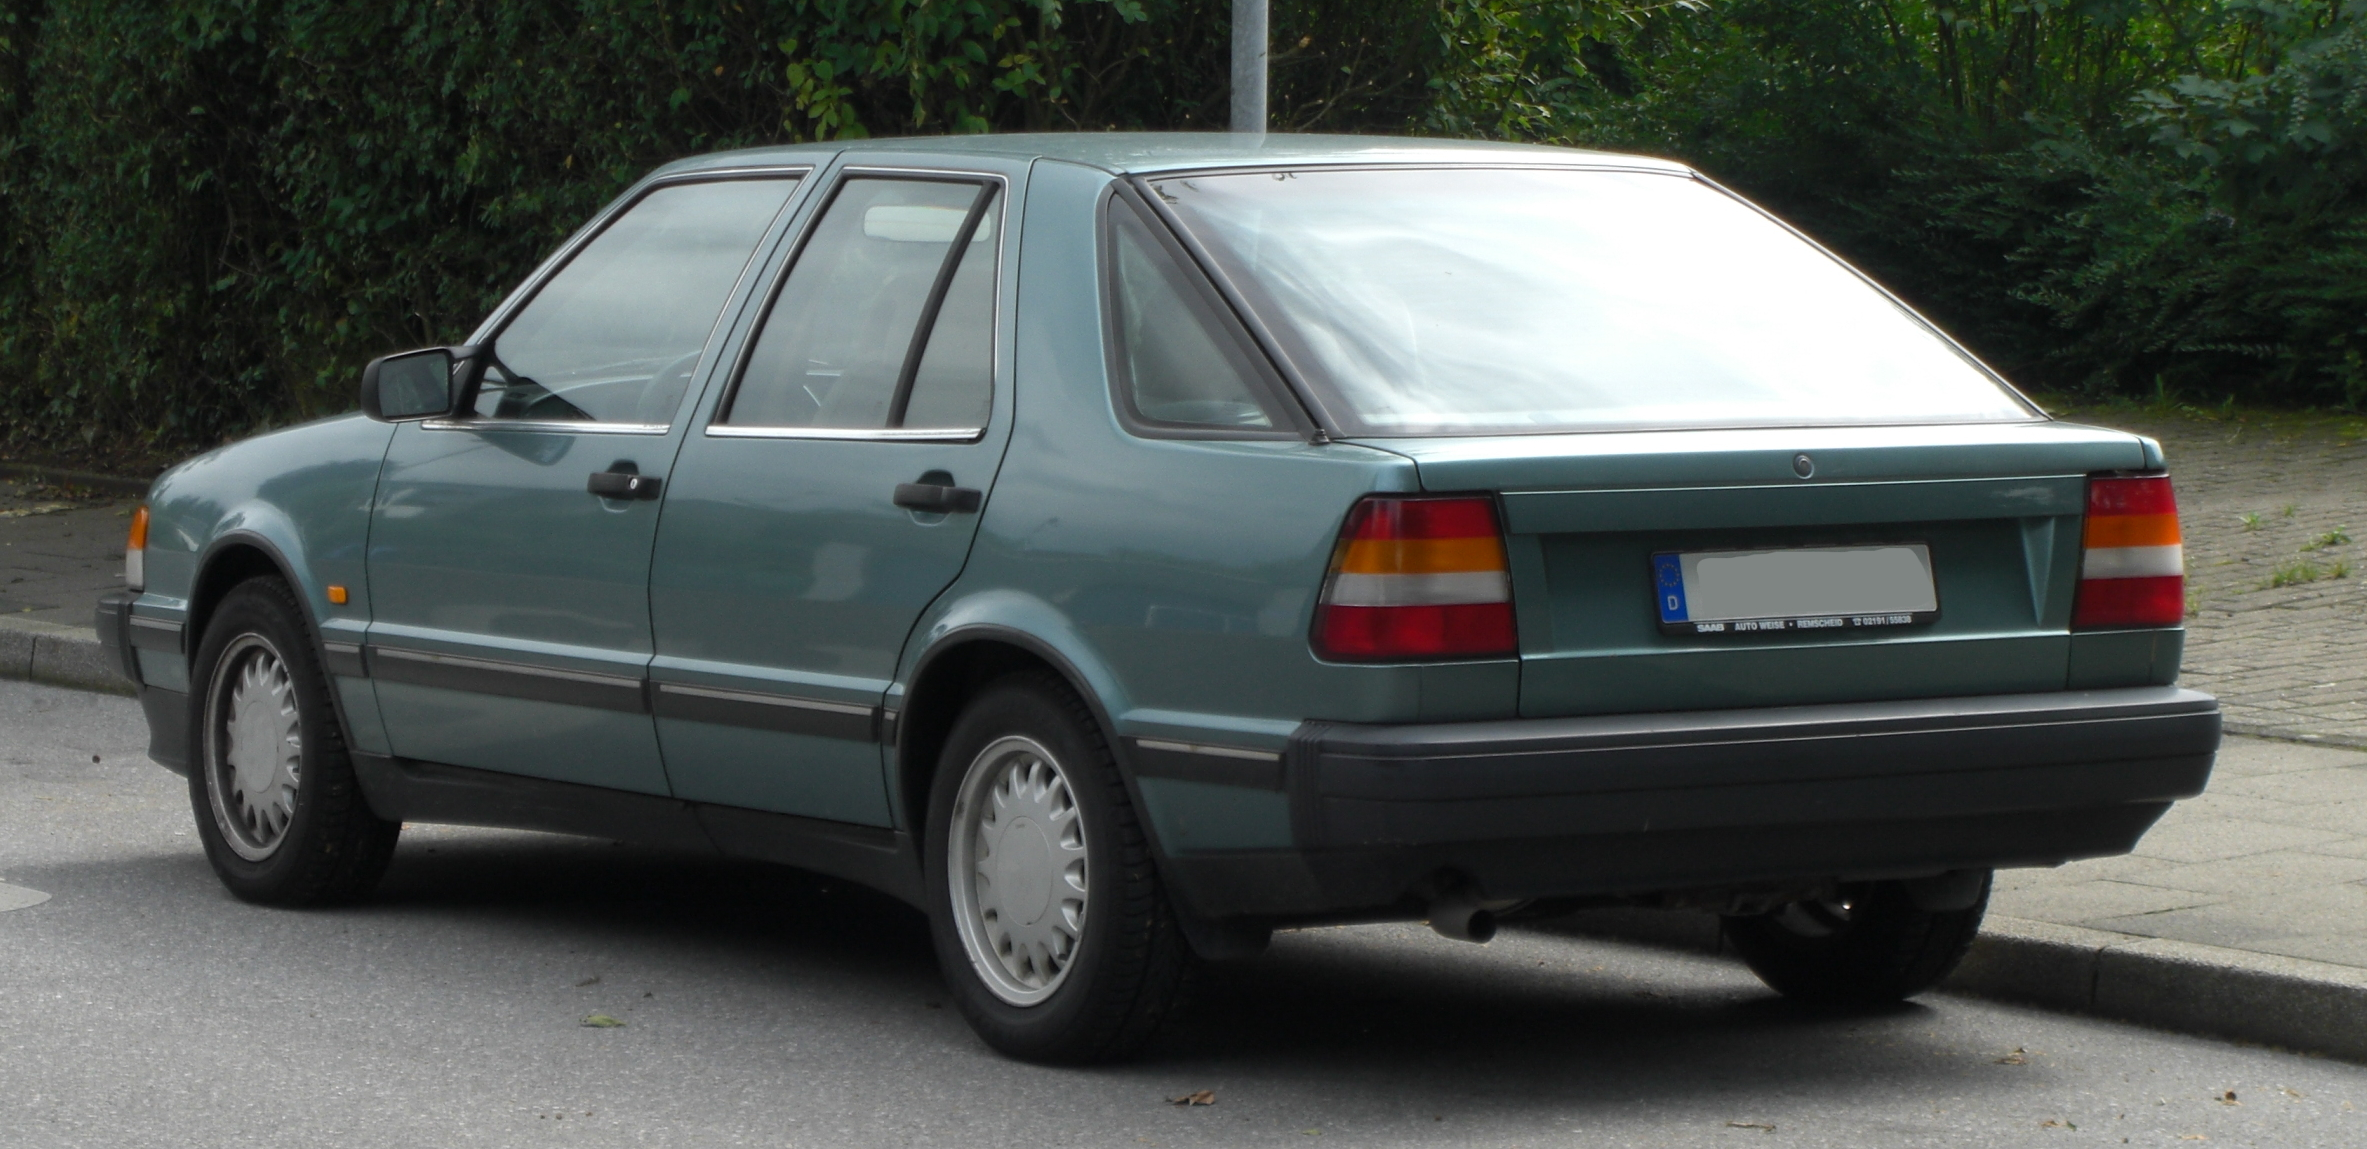 saab 9000 pictures #7